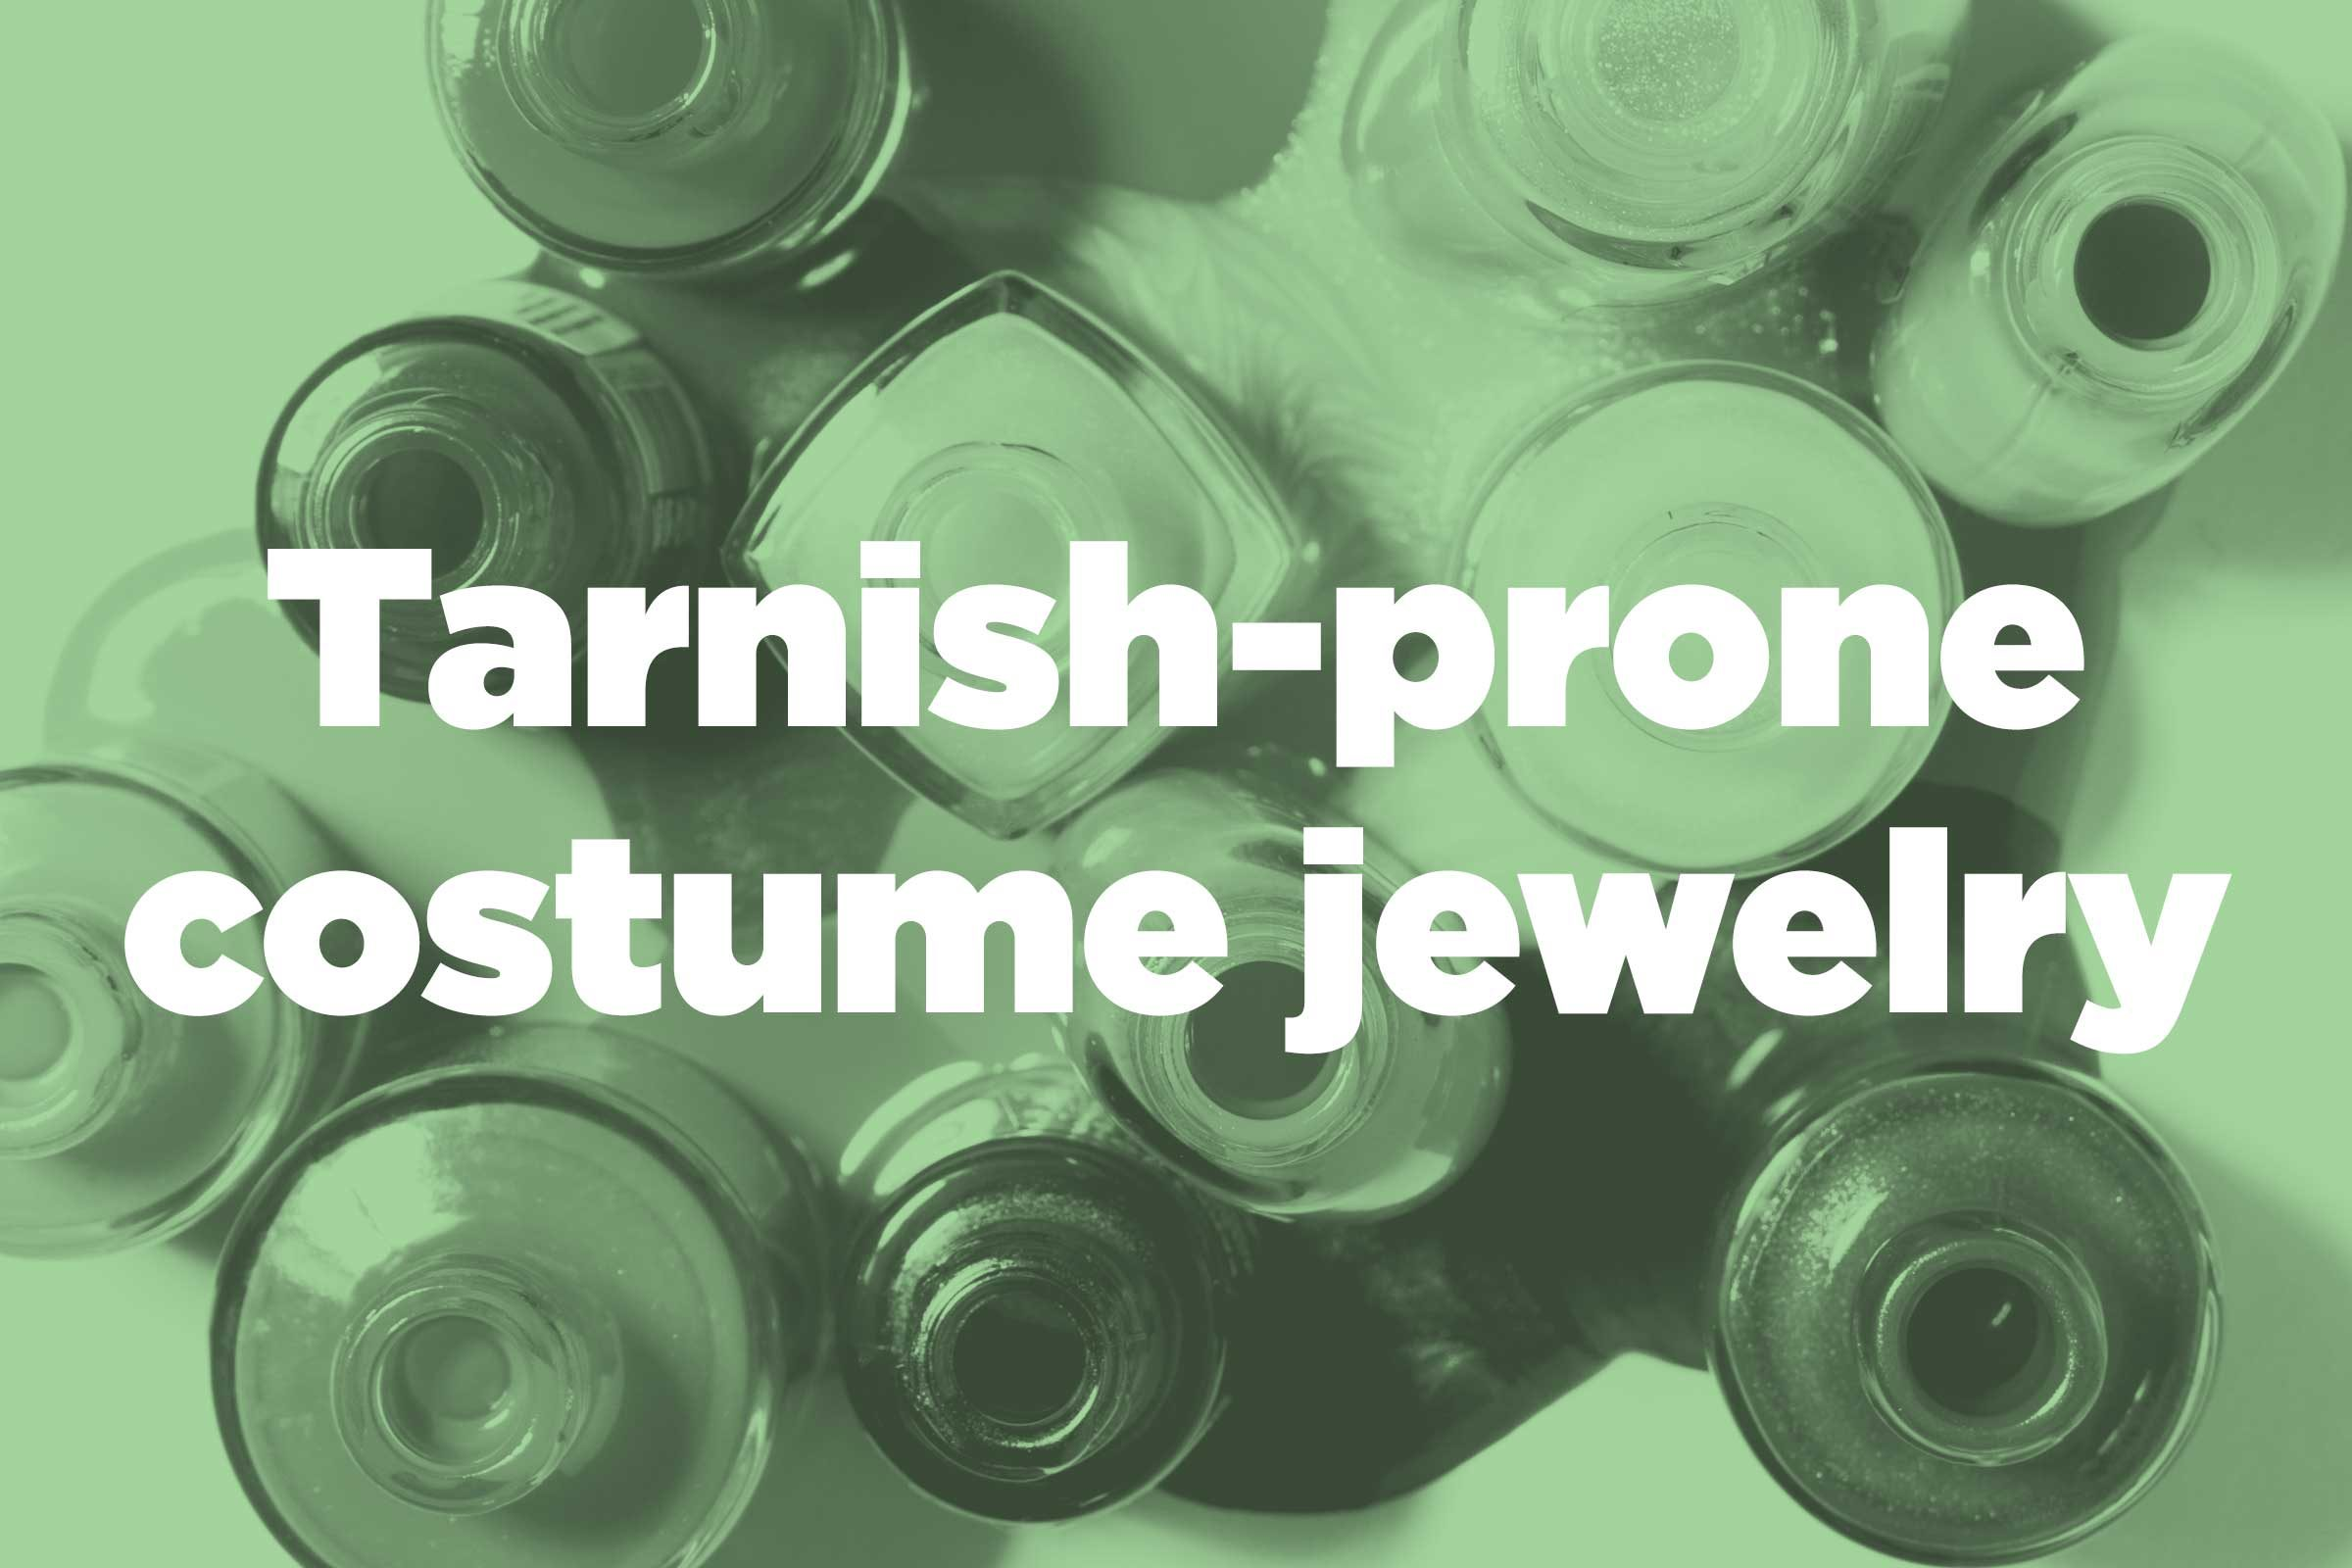 Protect tarnish-prone costume jewelry